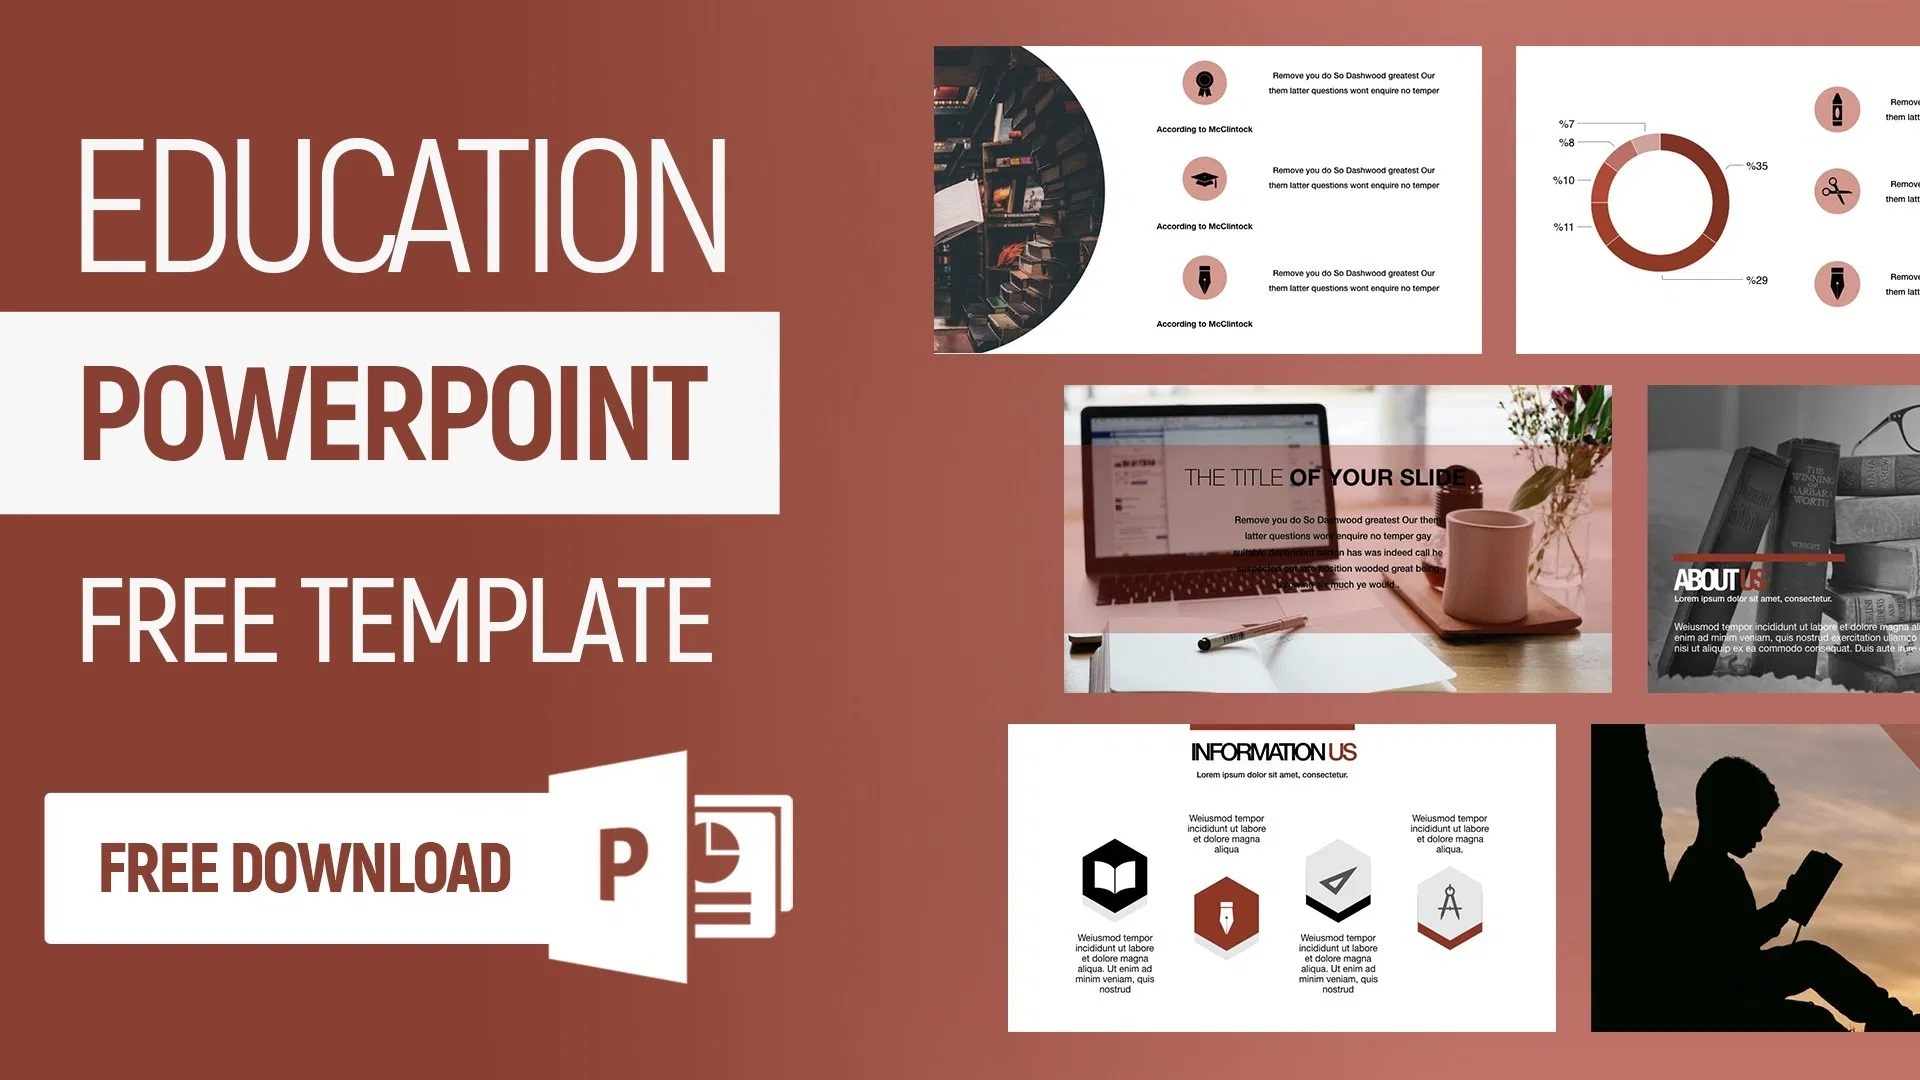 006 Top Powerpoint Template Free Education High Definition  Download Presentation PptFull